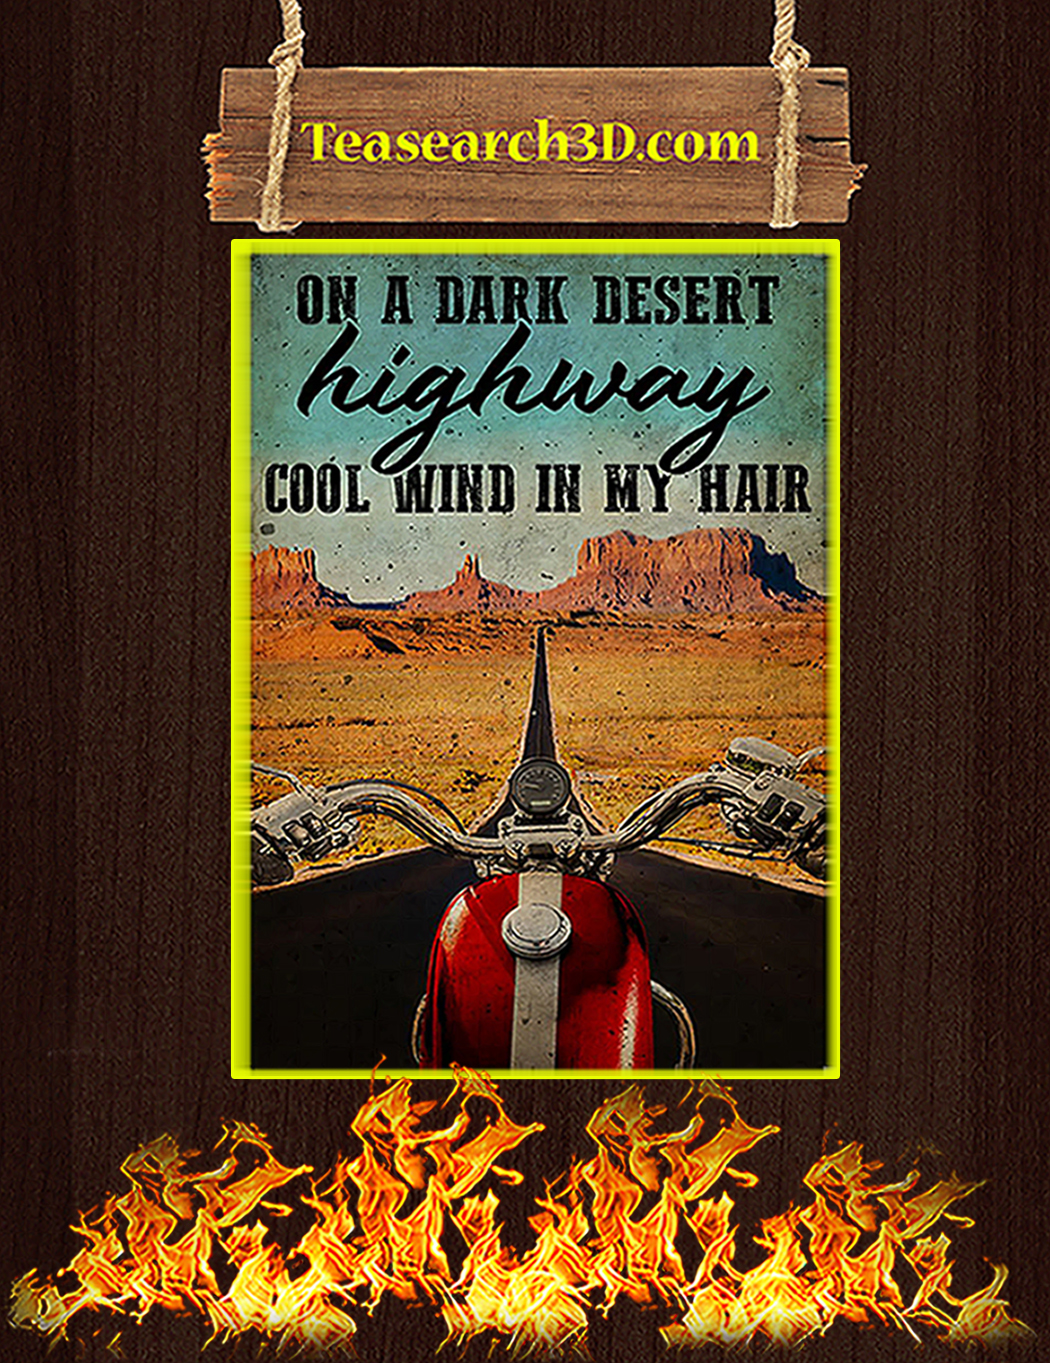 Biker on a dark desert highway cool wind in my hair poster A1